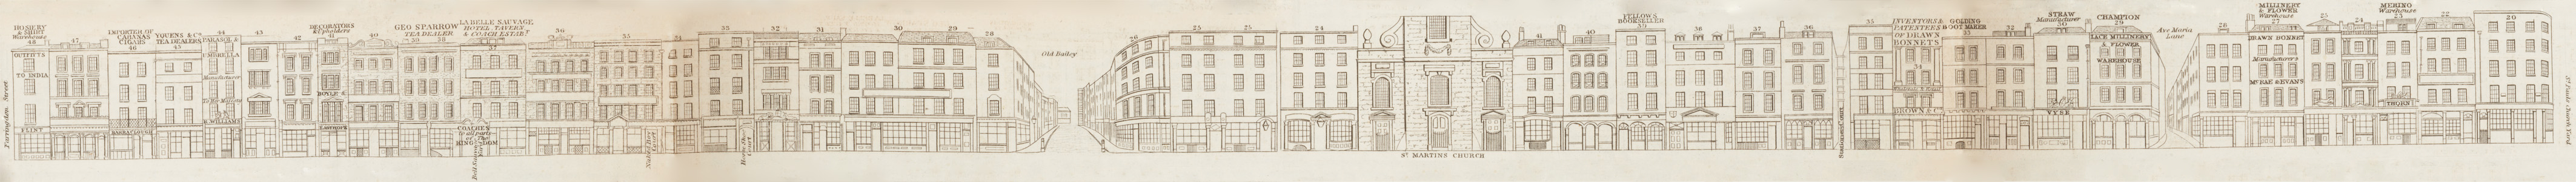 map - Tallis's London street views : No. 6. Ludgate Hill and Ludgate Street (north)